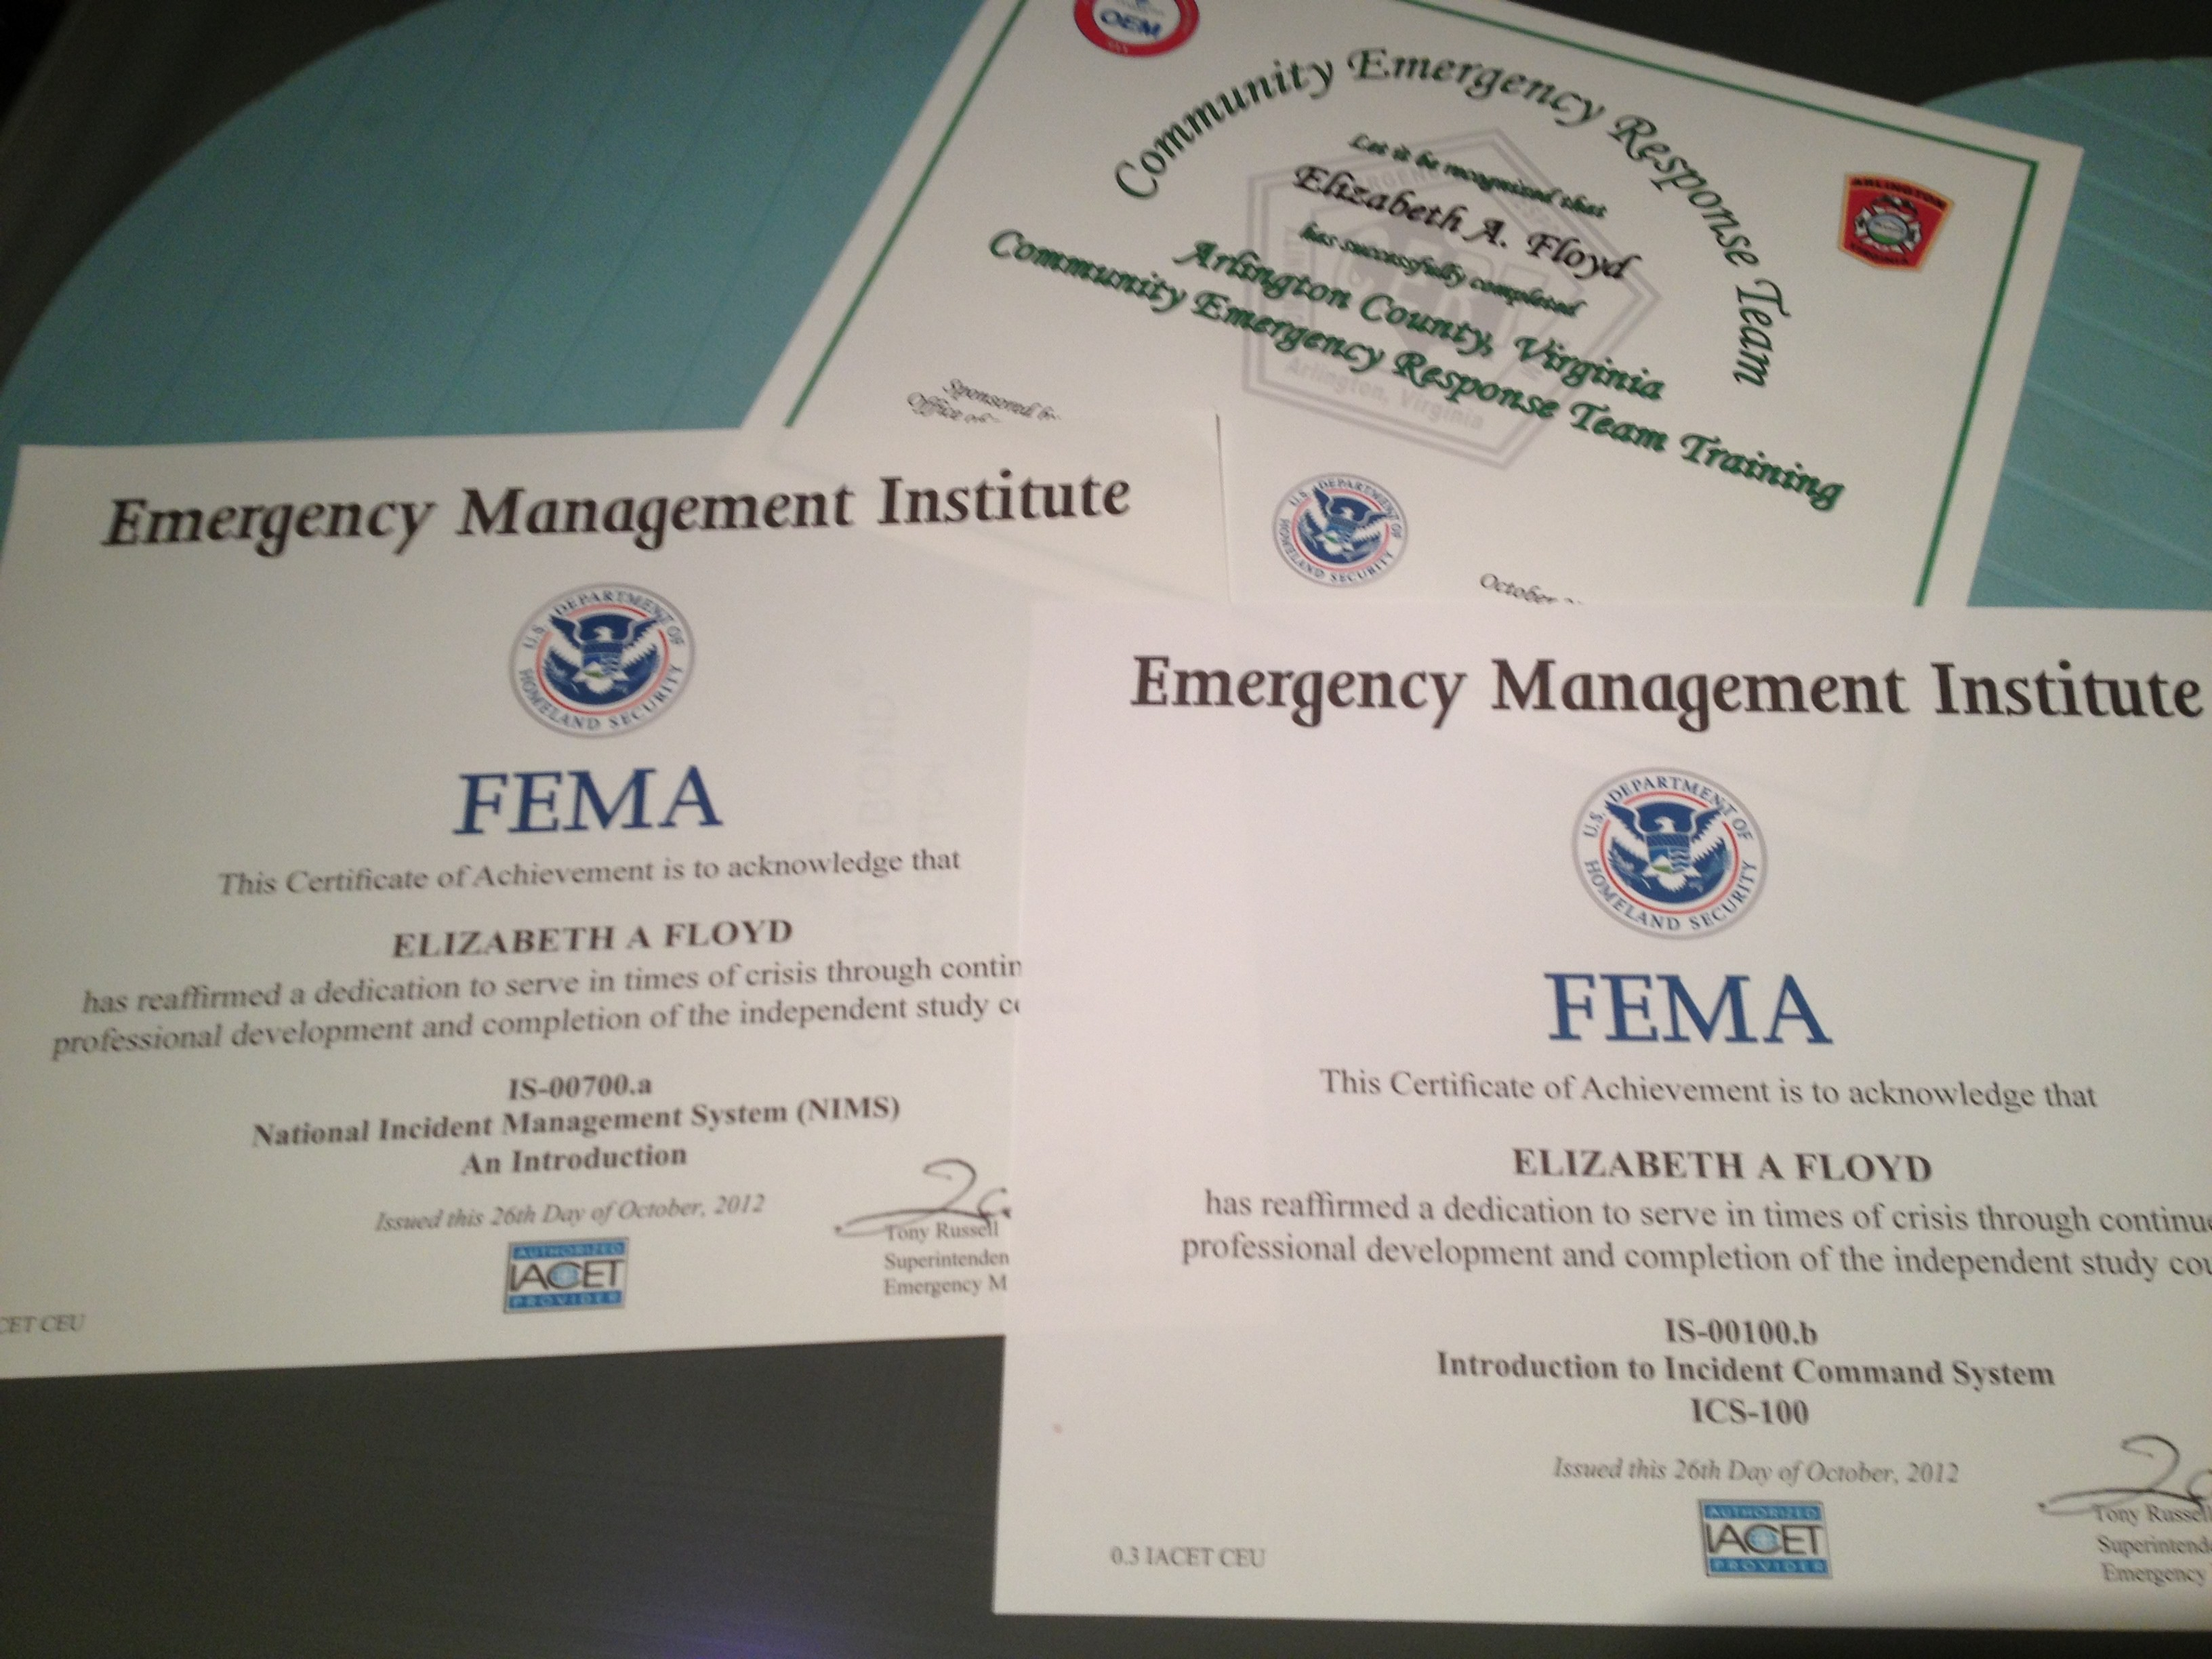 compare fema and fema aact In 1986, congress enacted the emergency medical treatment & labor act (emtala) to ensure public access to emergency services regardless of ability to pay.